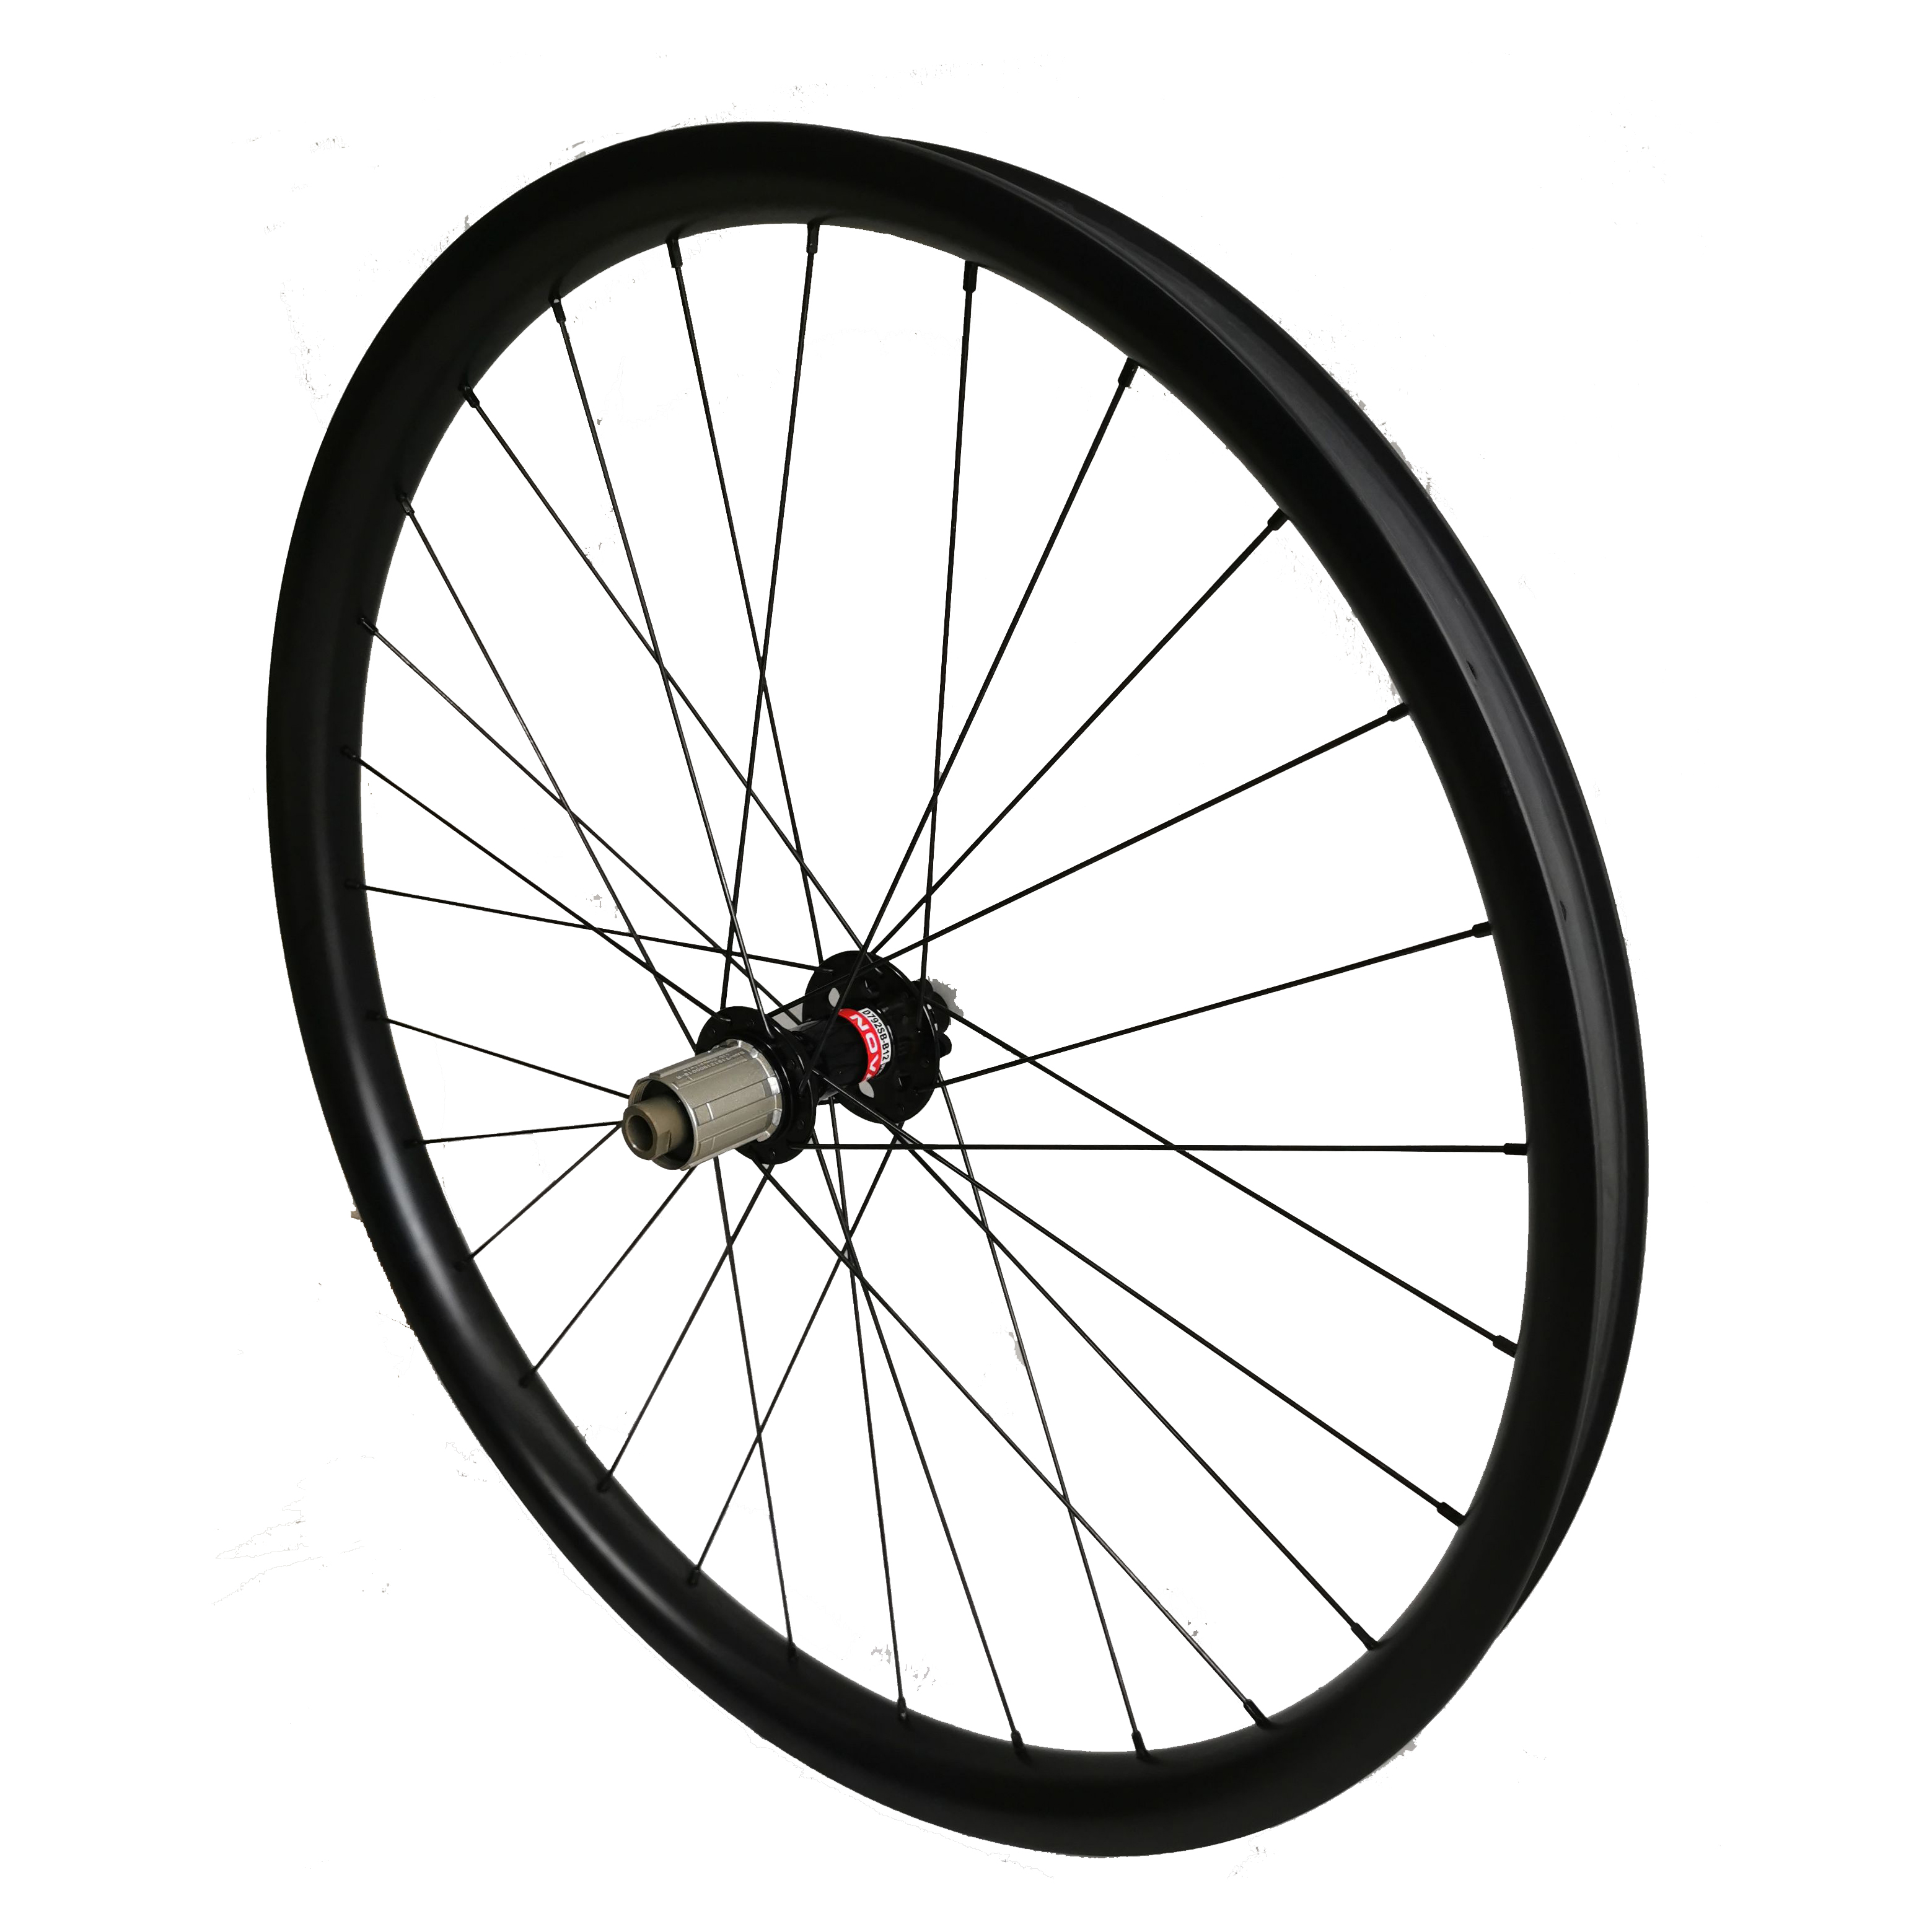 Carbon mtb rim dirt bike rear wheel Toray T700 26er Clincher ERD 530mm width 25mm depth 25mm carbon mountain bike rim